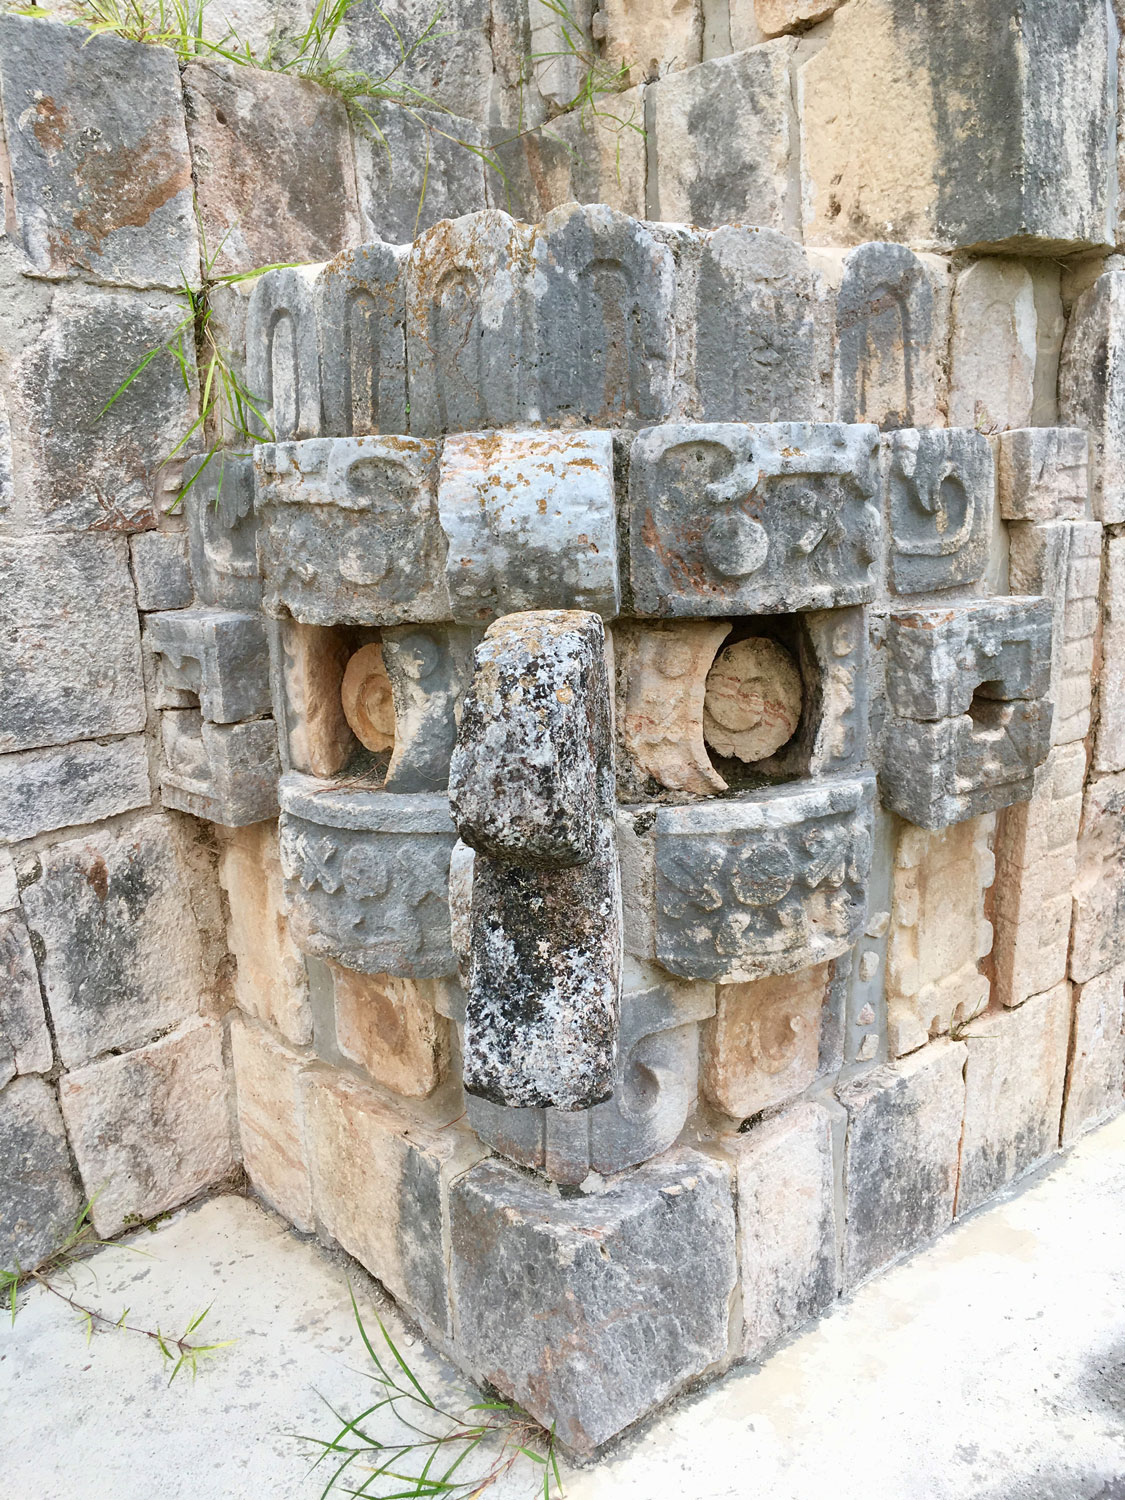 Uxmal monster on the Magician's Pyramid.